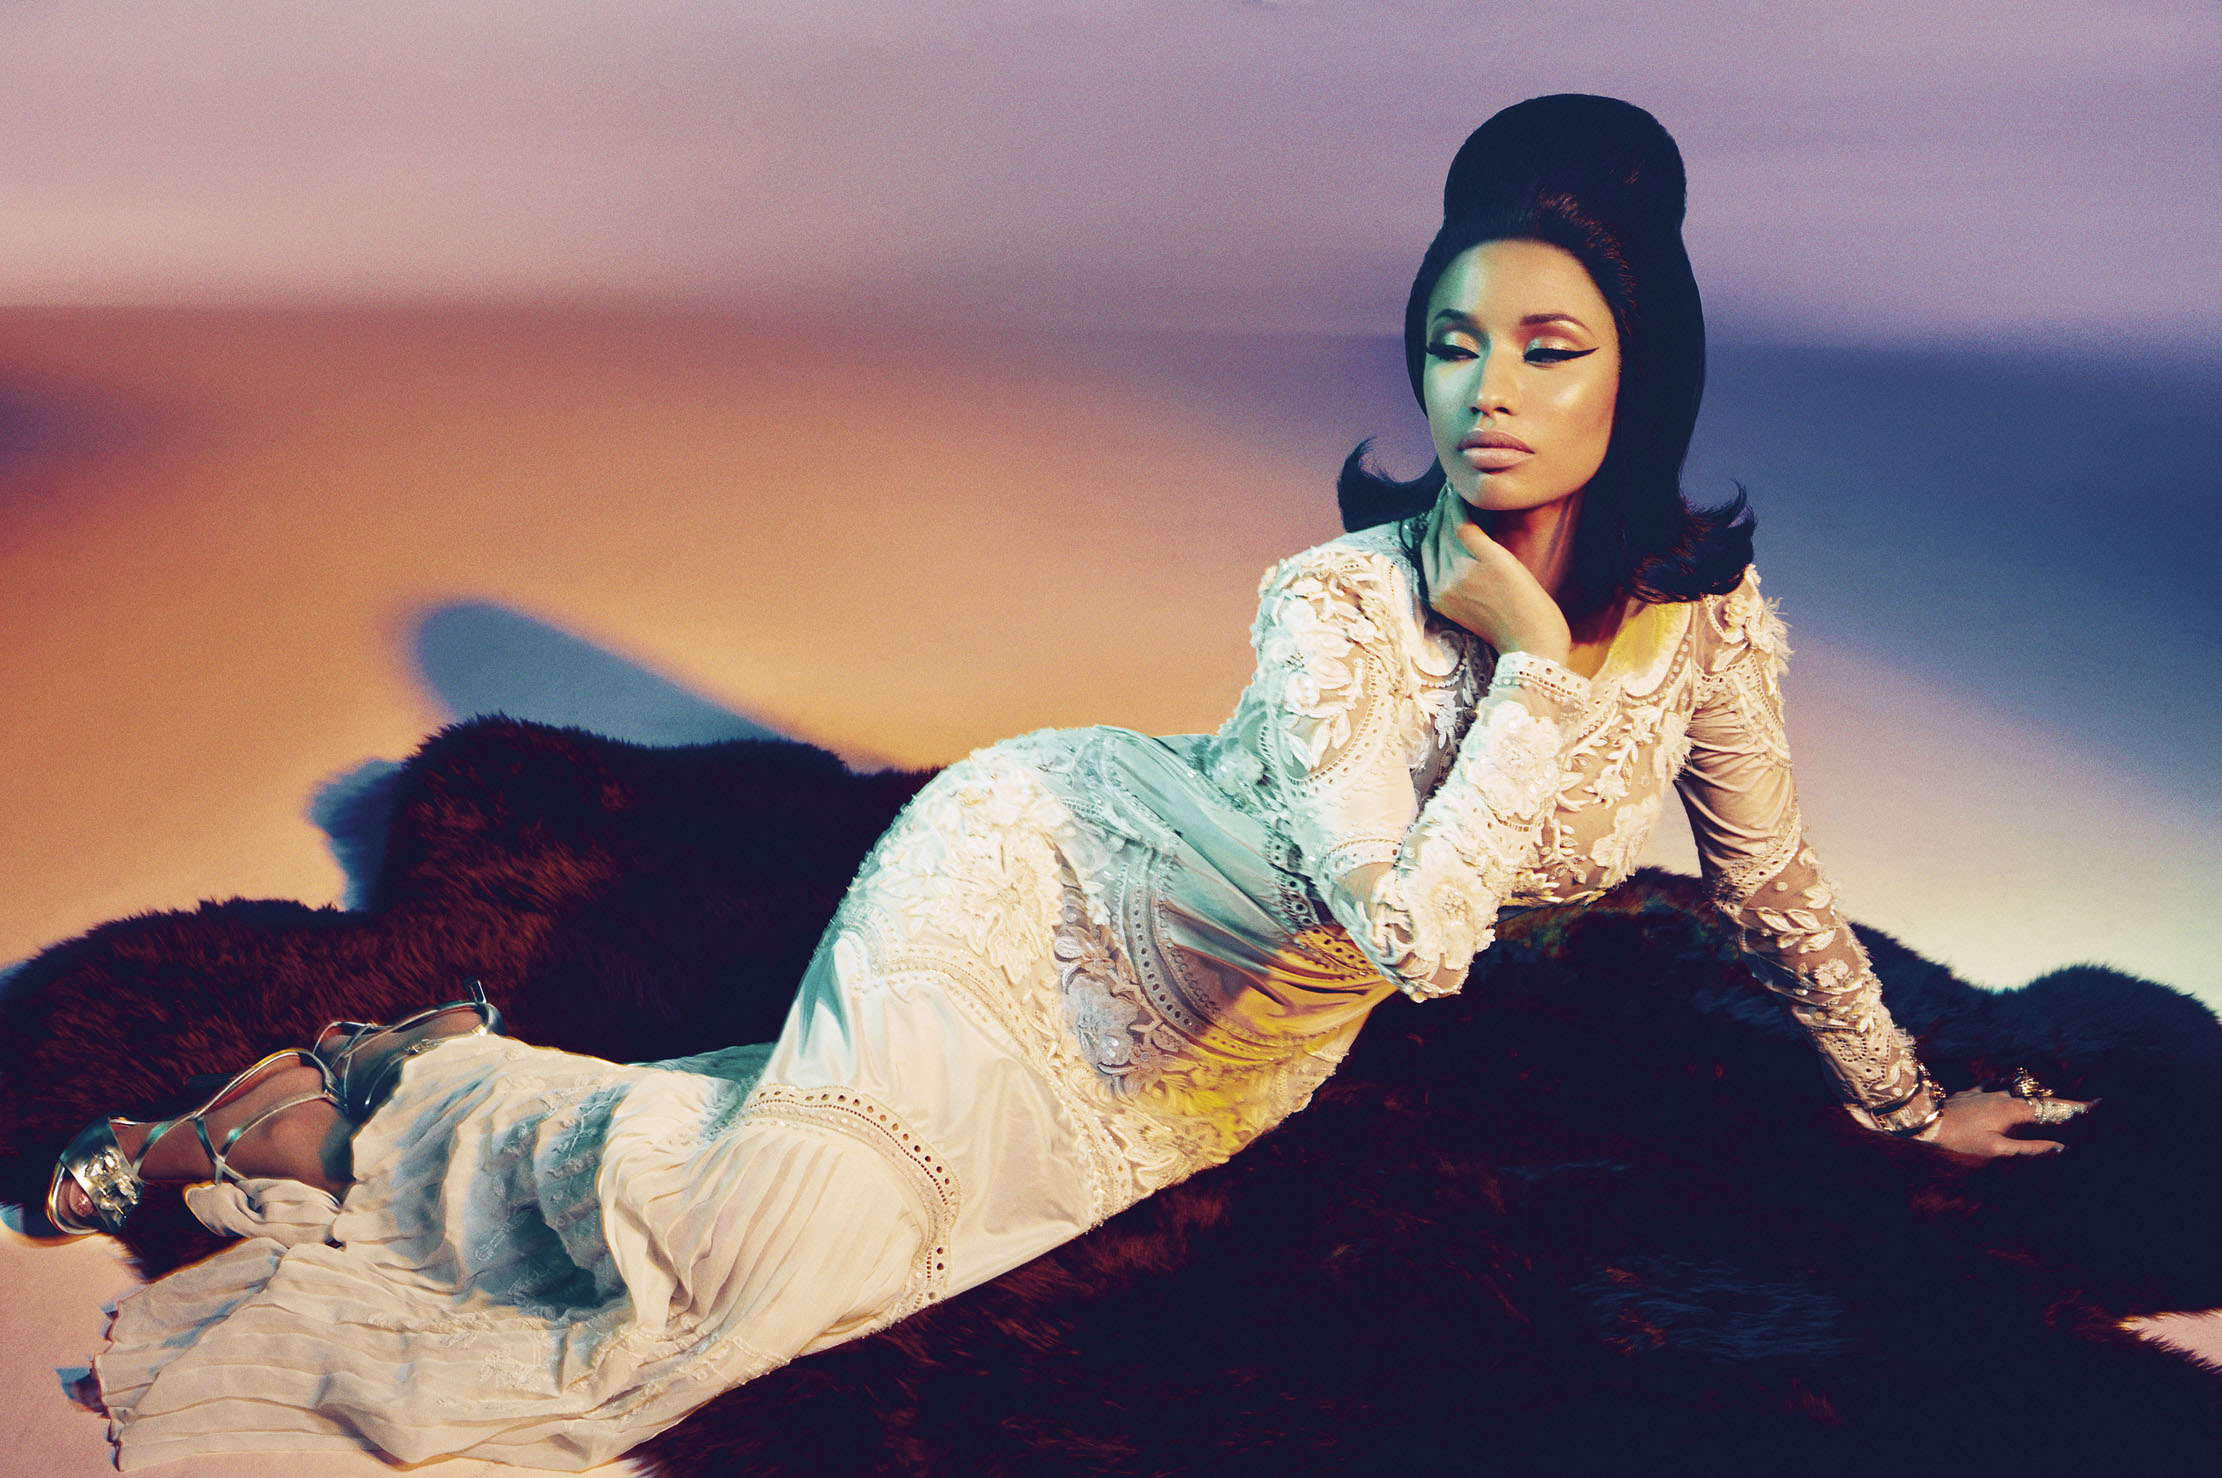 Nicki Minaj's Emotional Ride: 5 Highs and Lows From MTV Doc 'My Time Again'